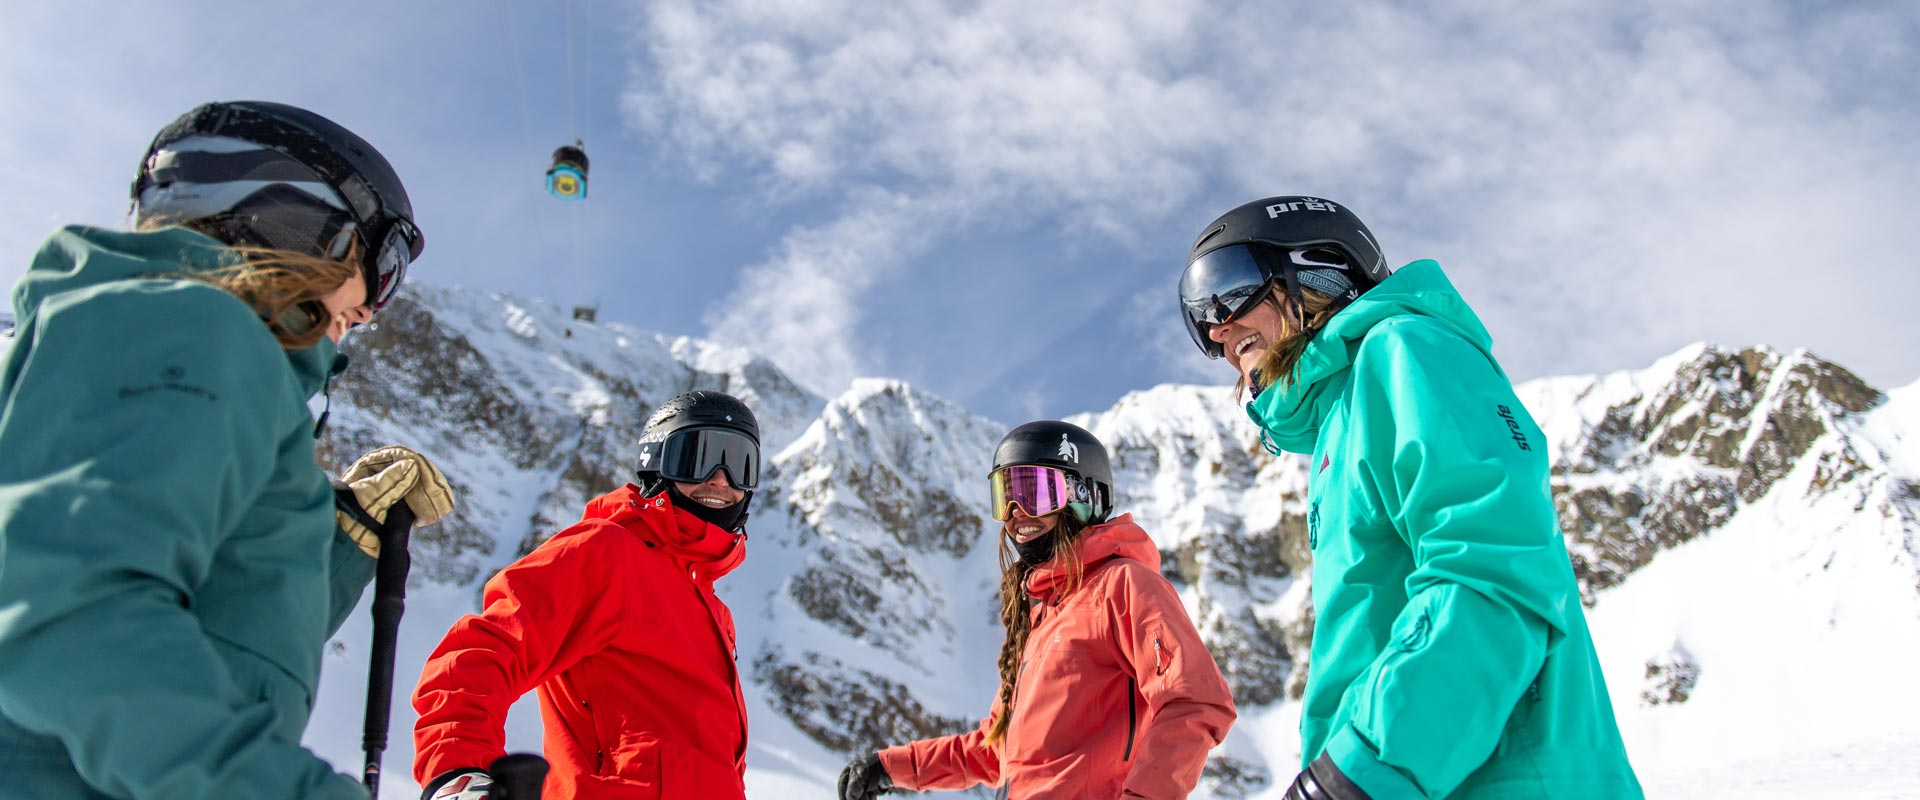 Learn to Ski & Snowboard Lessons